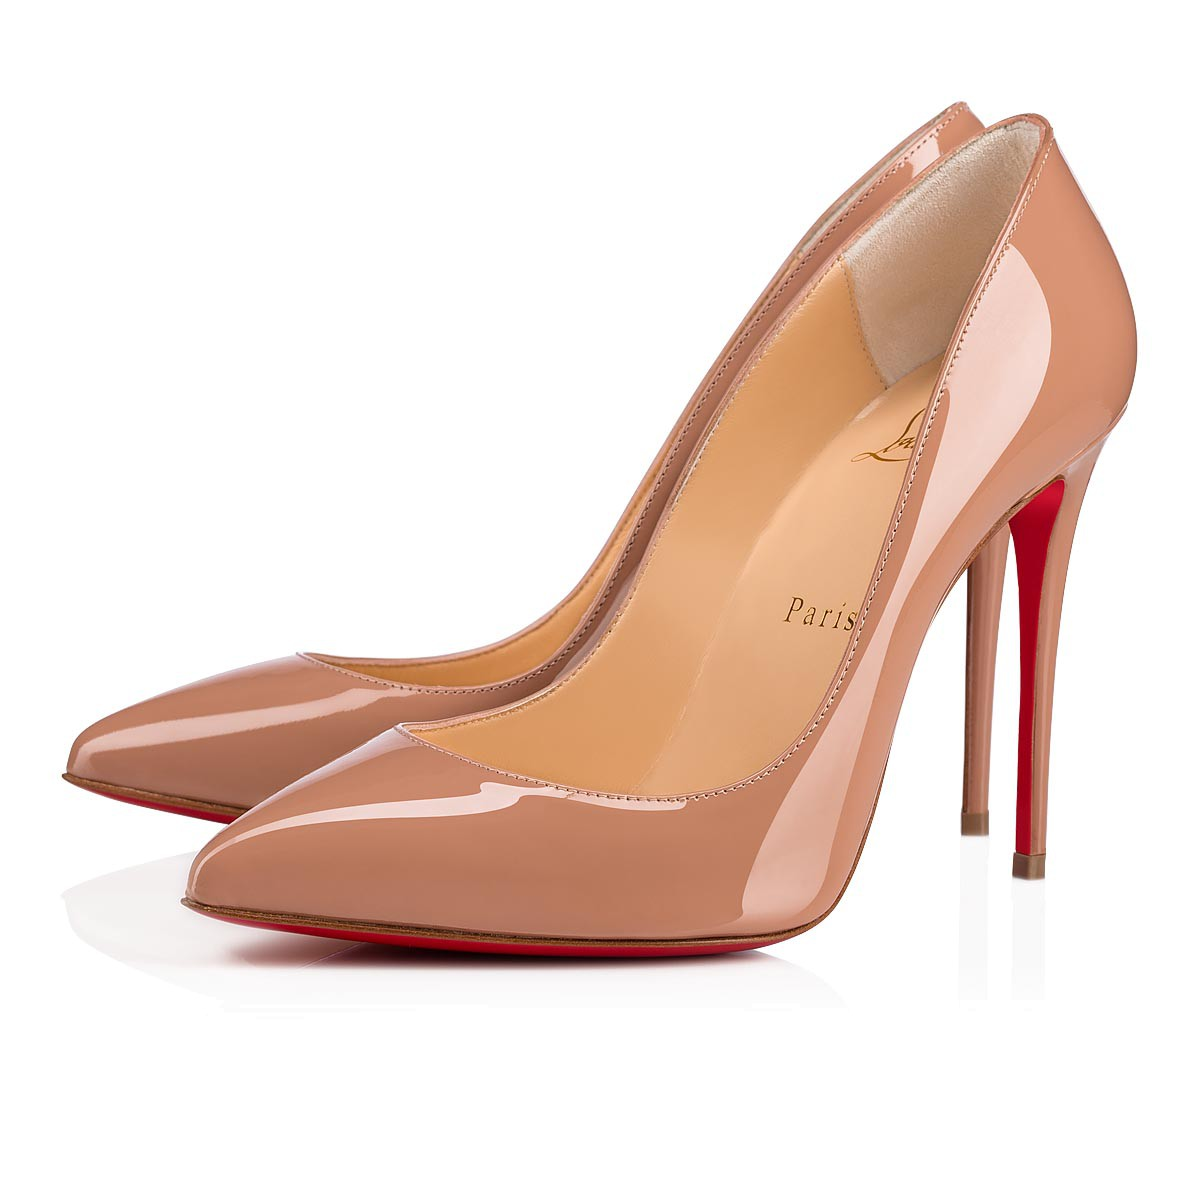 Christian Louboutin - a Magento brand